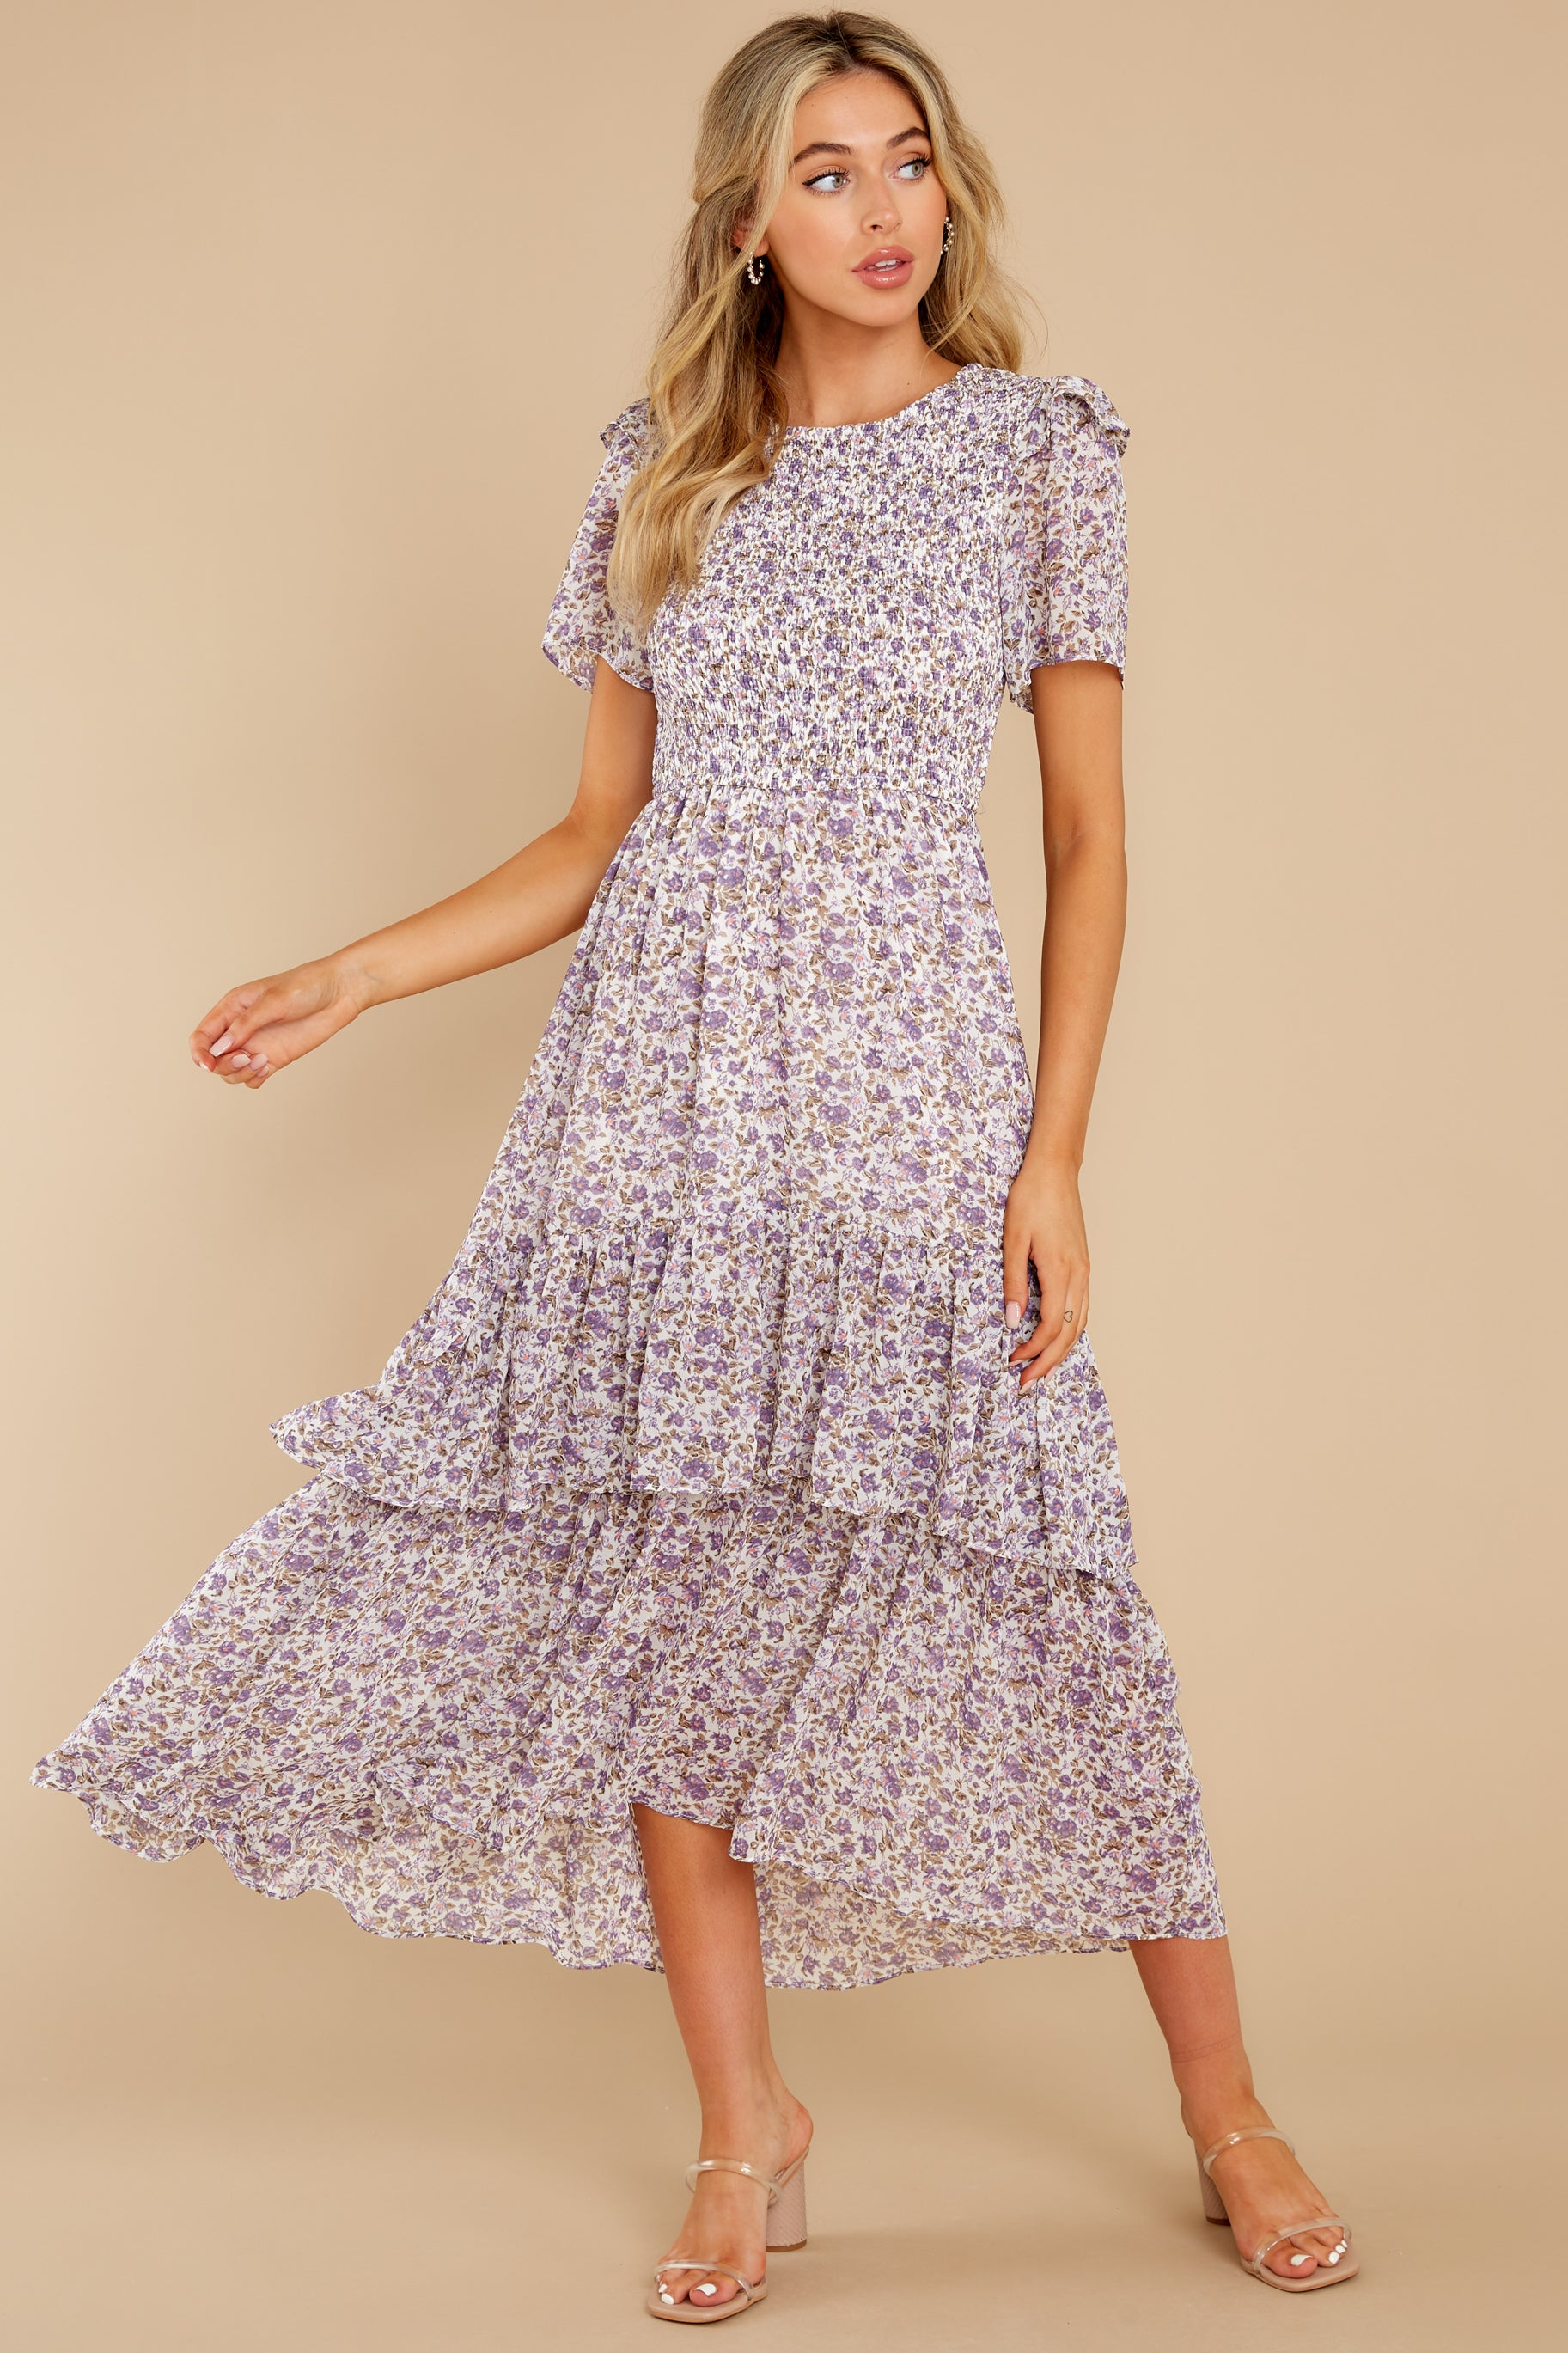 1 Magnetic Attraction Purple Floral Print Maxi Dress at reddress.com